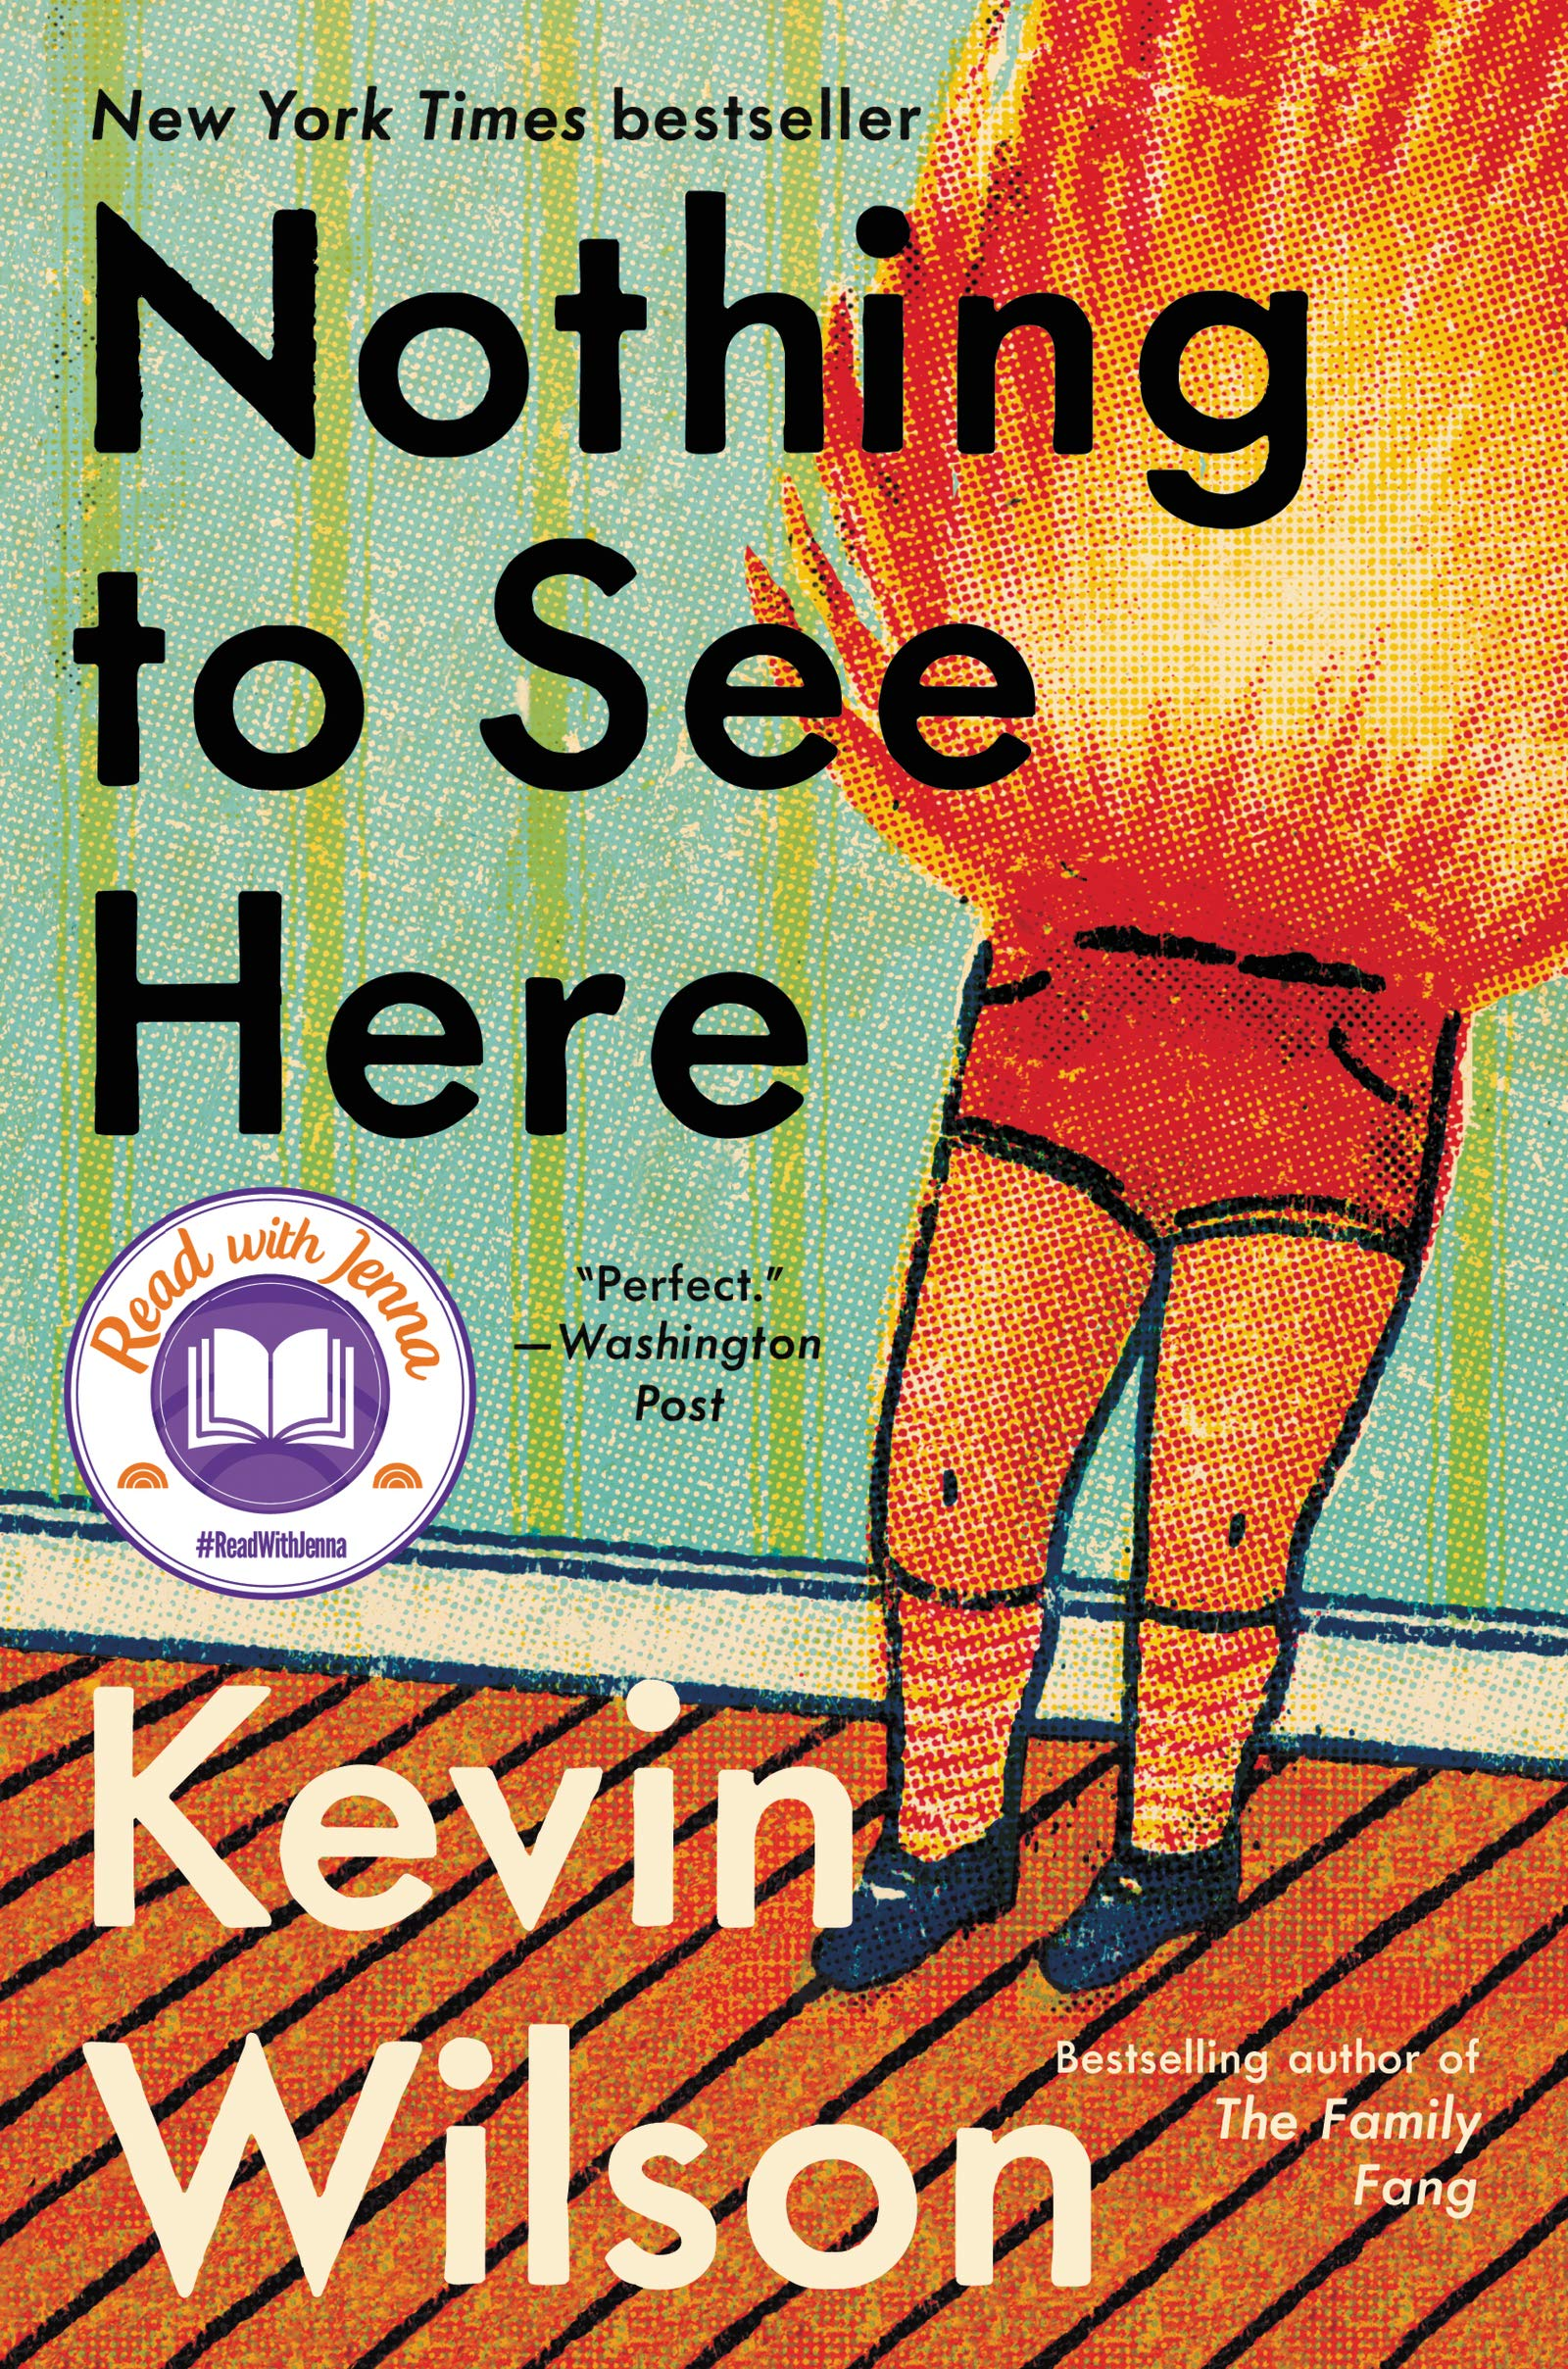 Book cover of Nothing to See Here by Kevin Wilson.